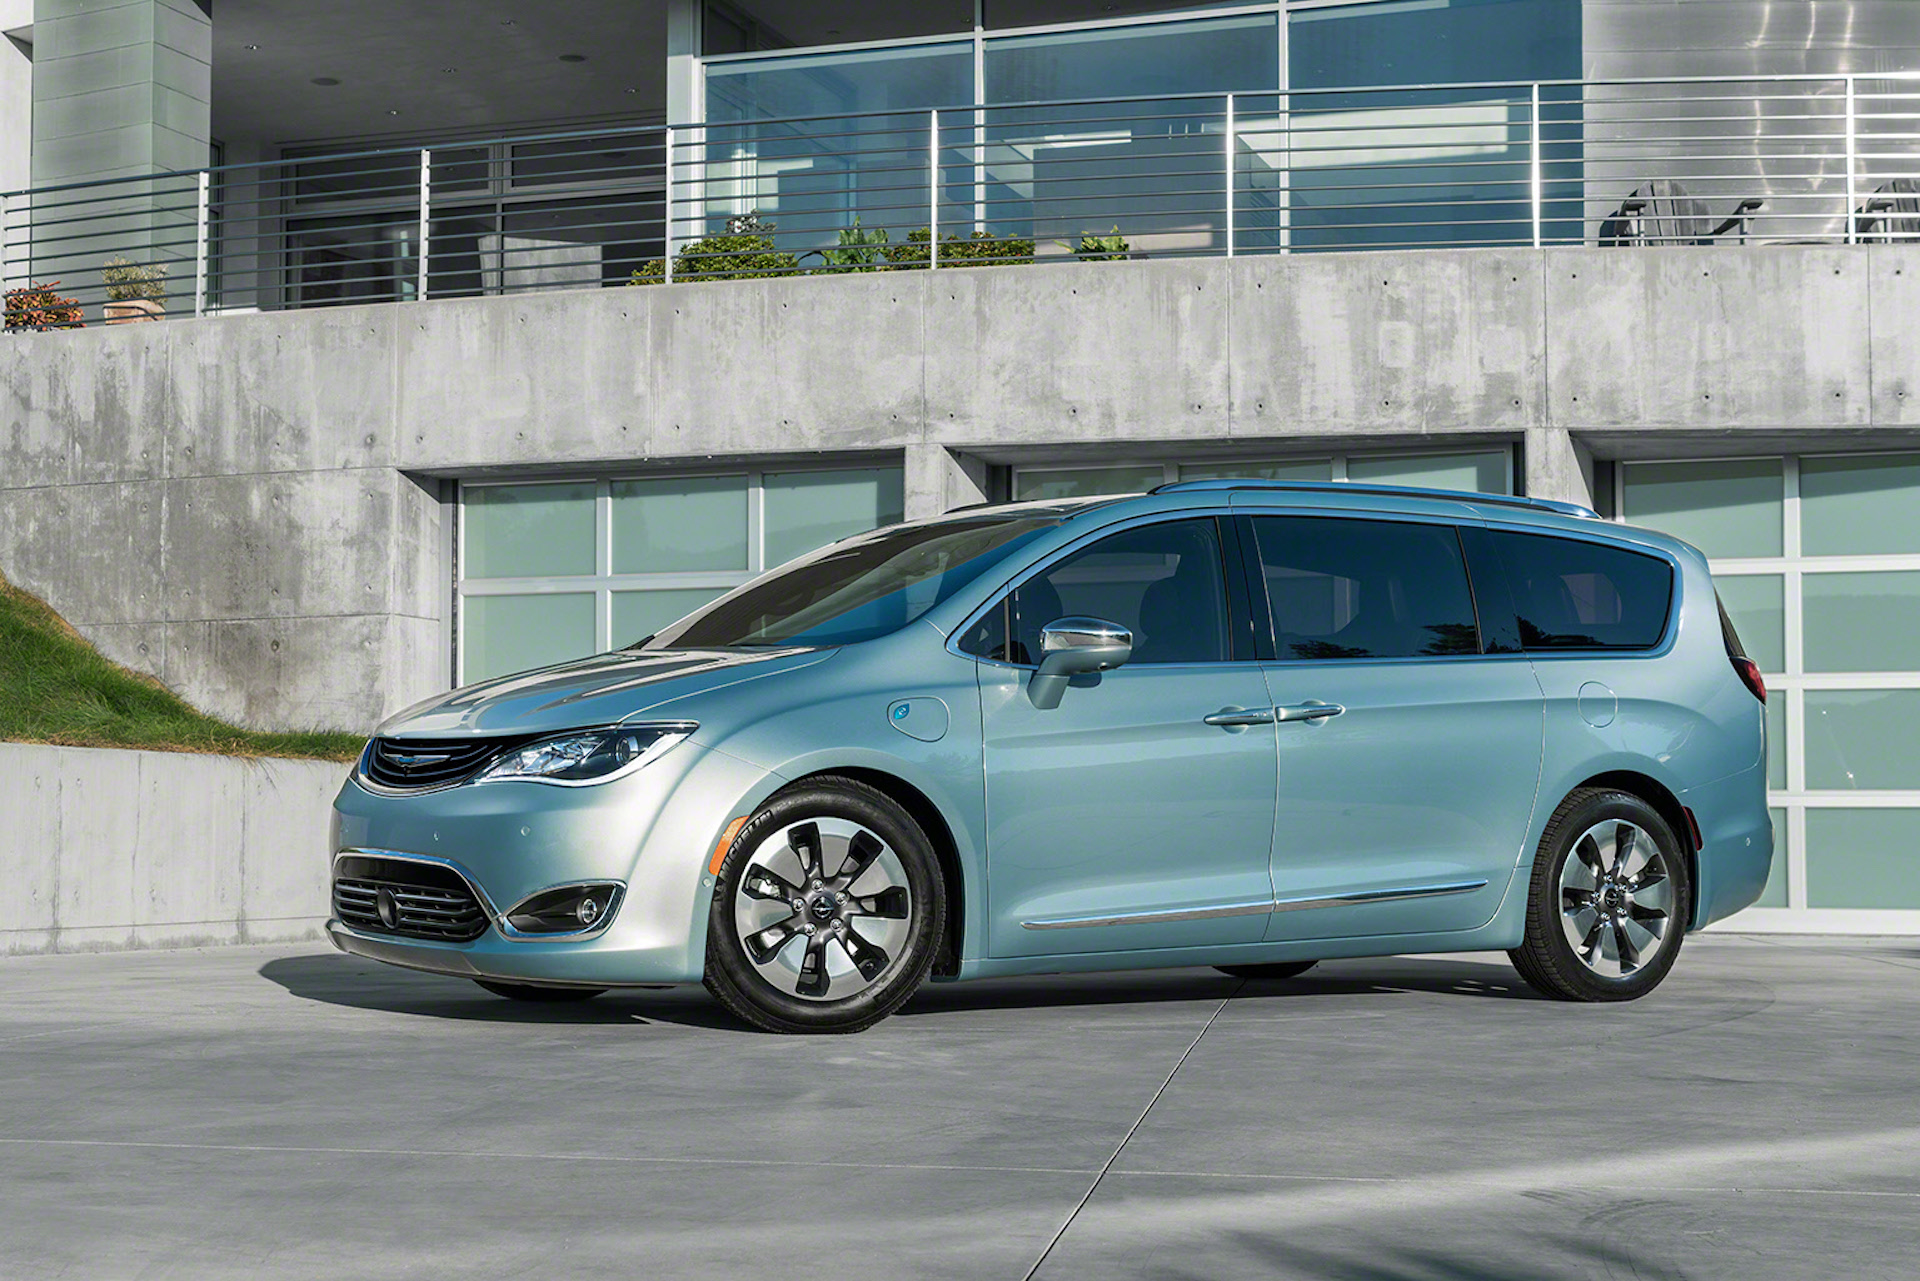 Bolt Ev Details Chrysler Plug In Minivan Vw Blunders Detroit Show The Week Reverse